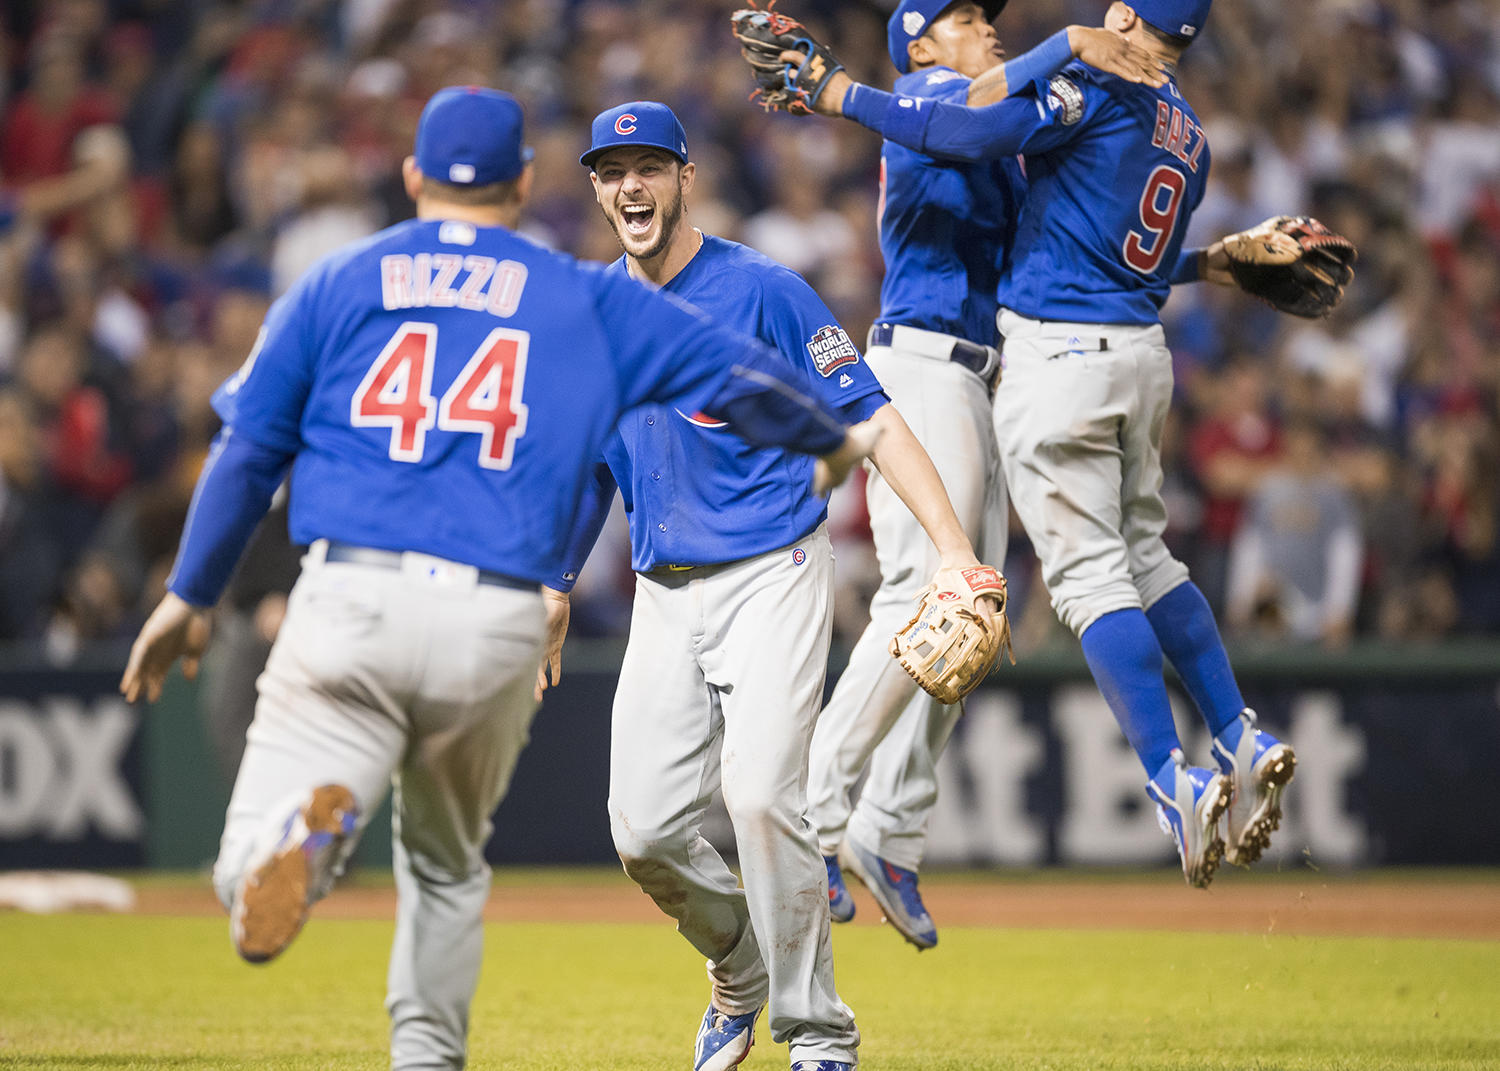 Kris Bryant, Addison Russell, Anthony Rizzo and Javier Baez of the Chicago Cubs celebrate on the field after defeating the Cleveland Indians to win the 2016 World Series at Progressive Field on November 2, 2016 in Cleveland, Ohio. (Jean Fruth / National Baseball Hall of Fame)